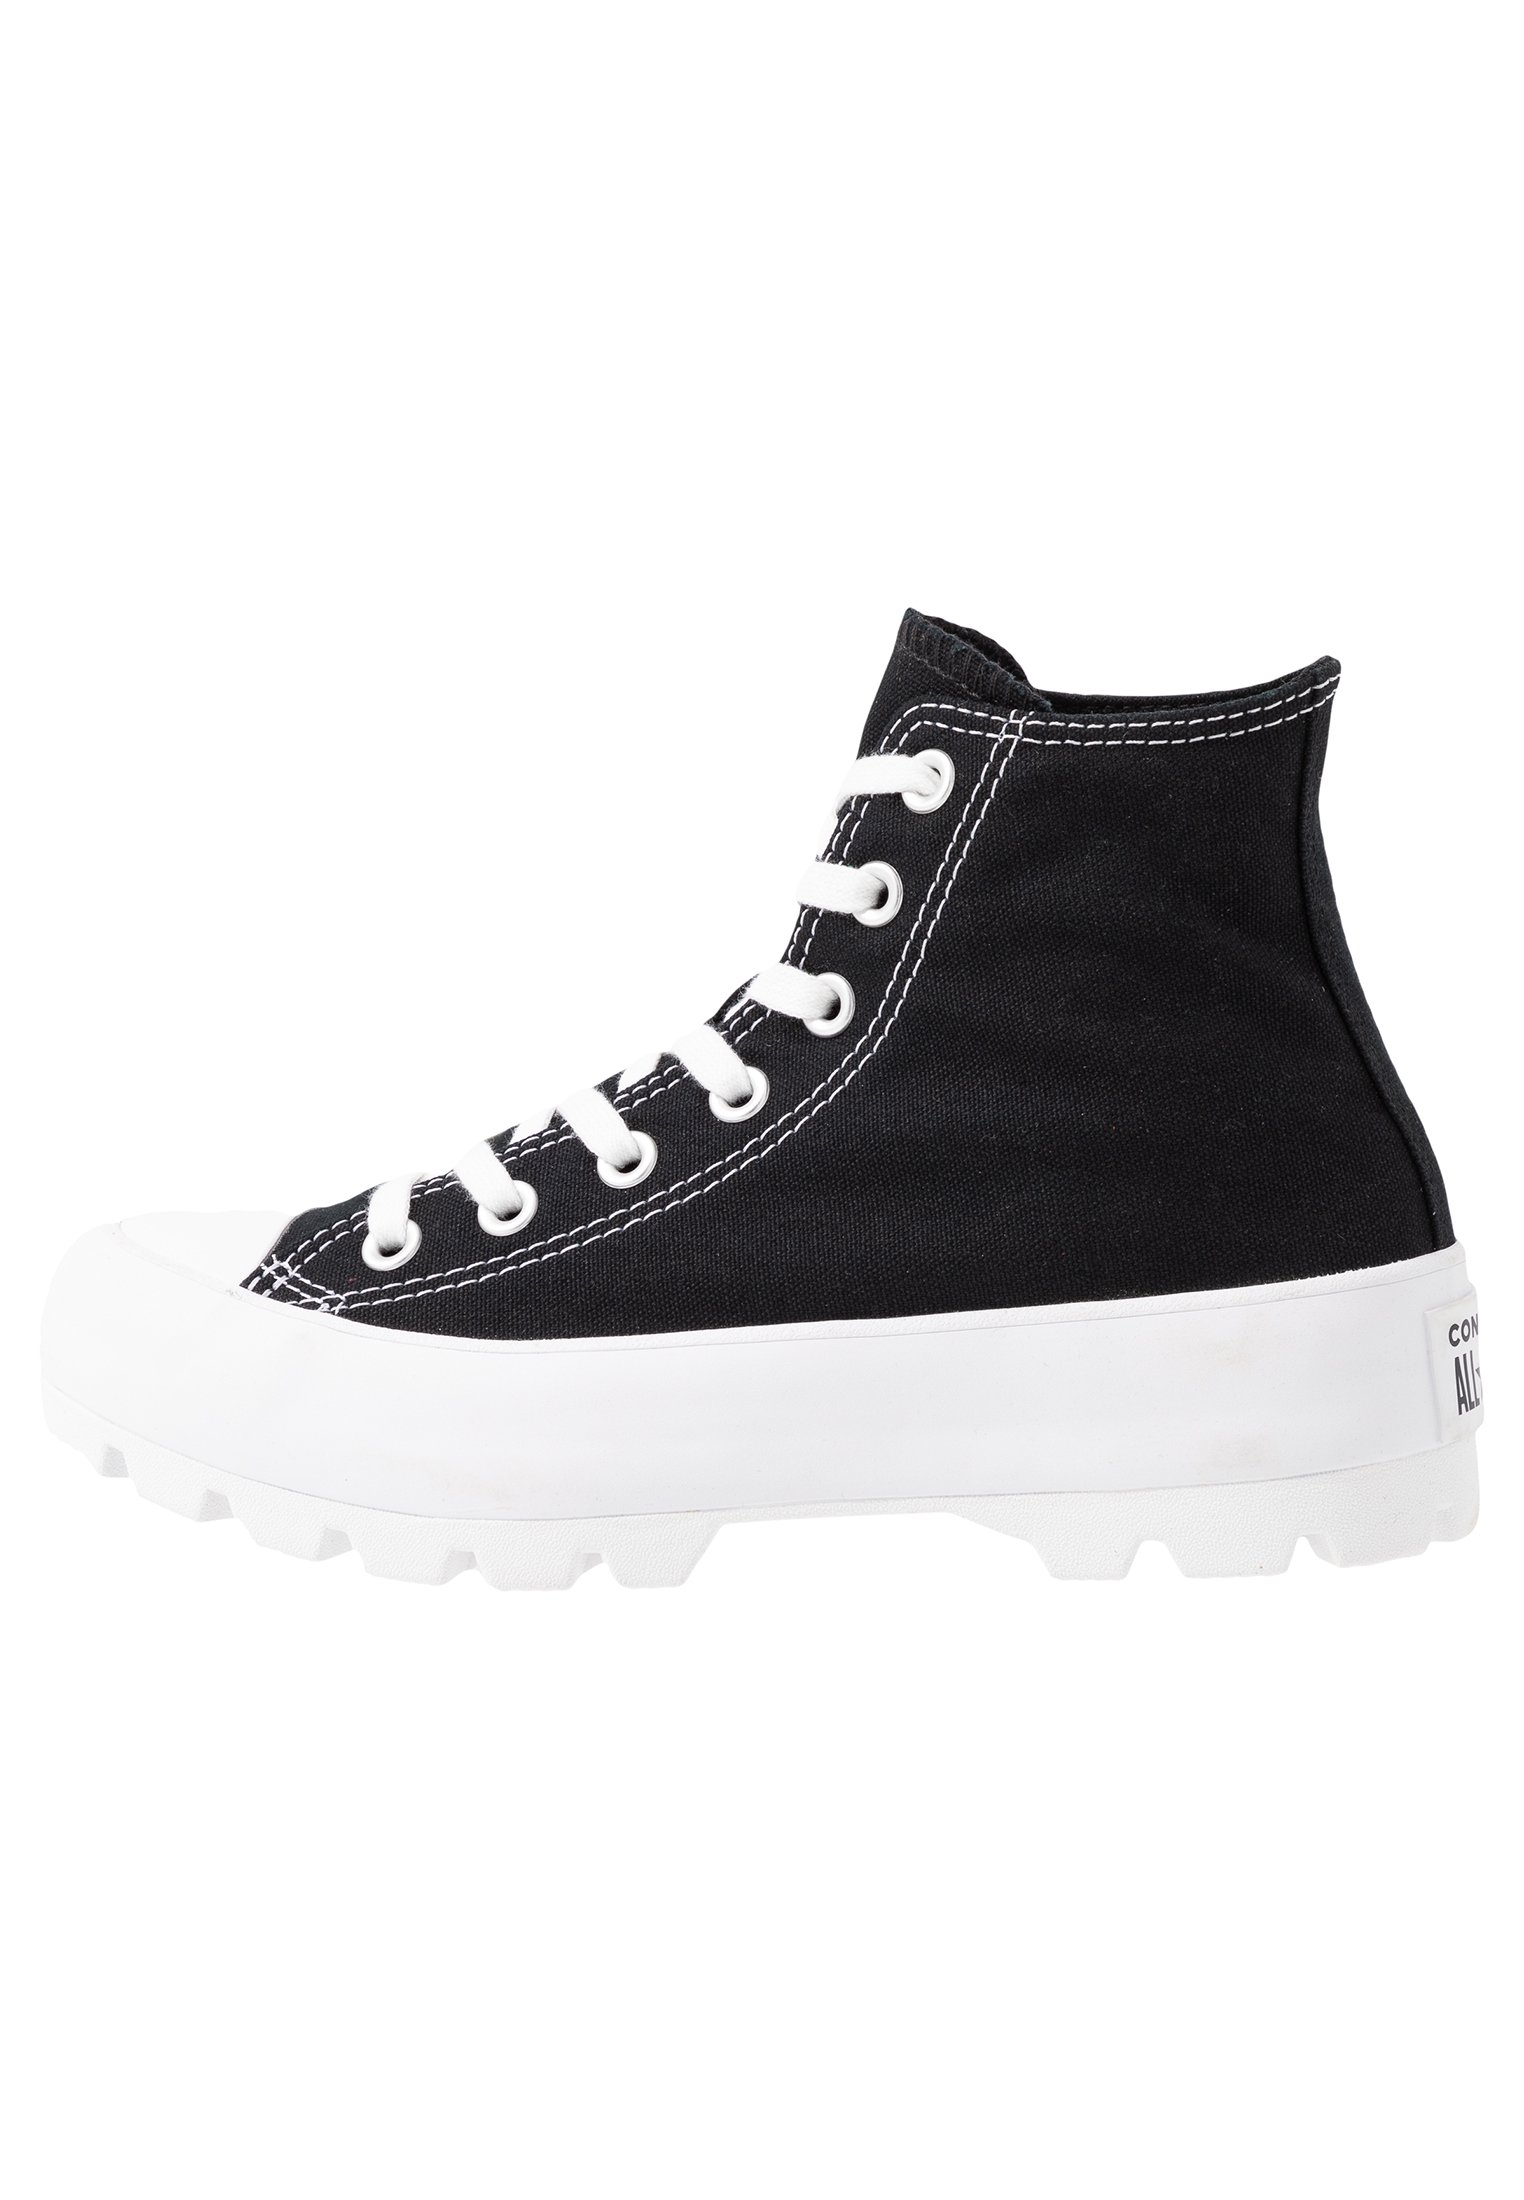 CHUCK TAYLOR ALL STAR LUGGED Sneakers hoog blackwhite